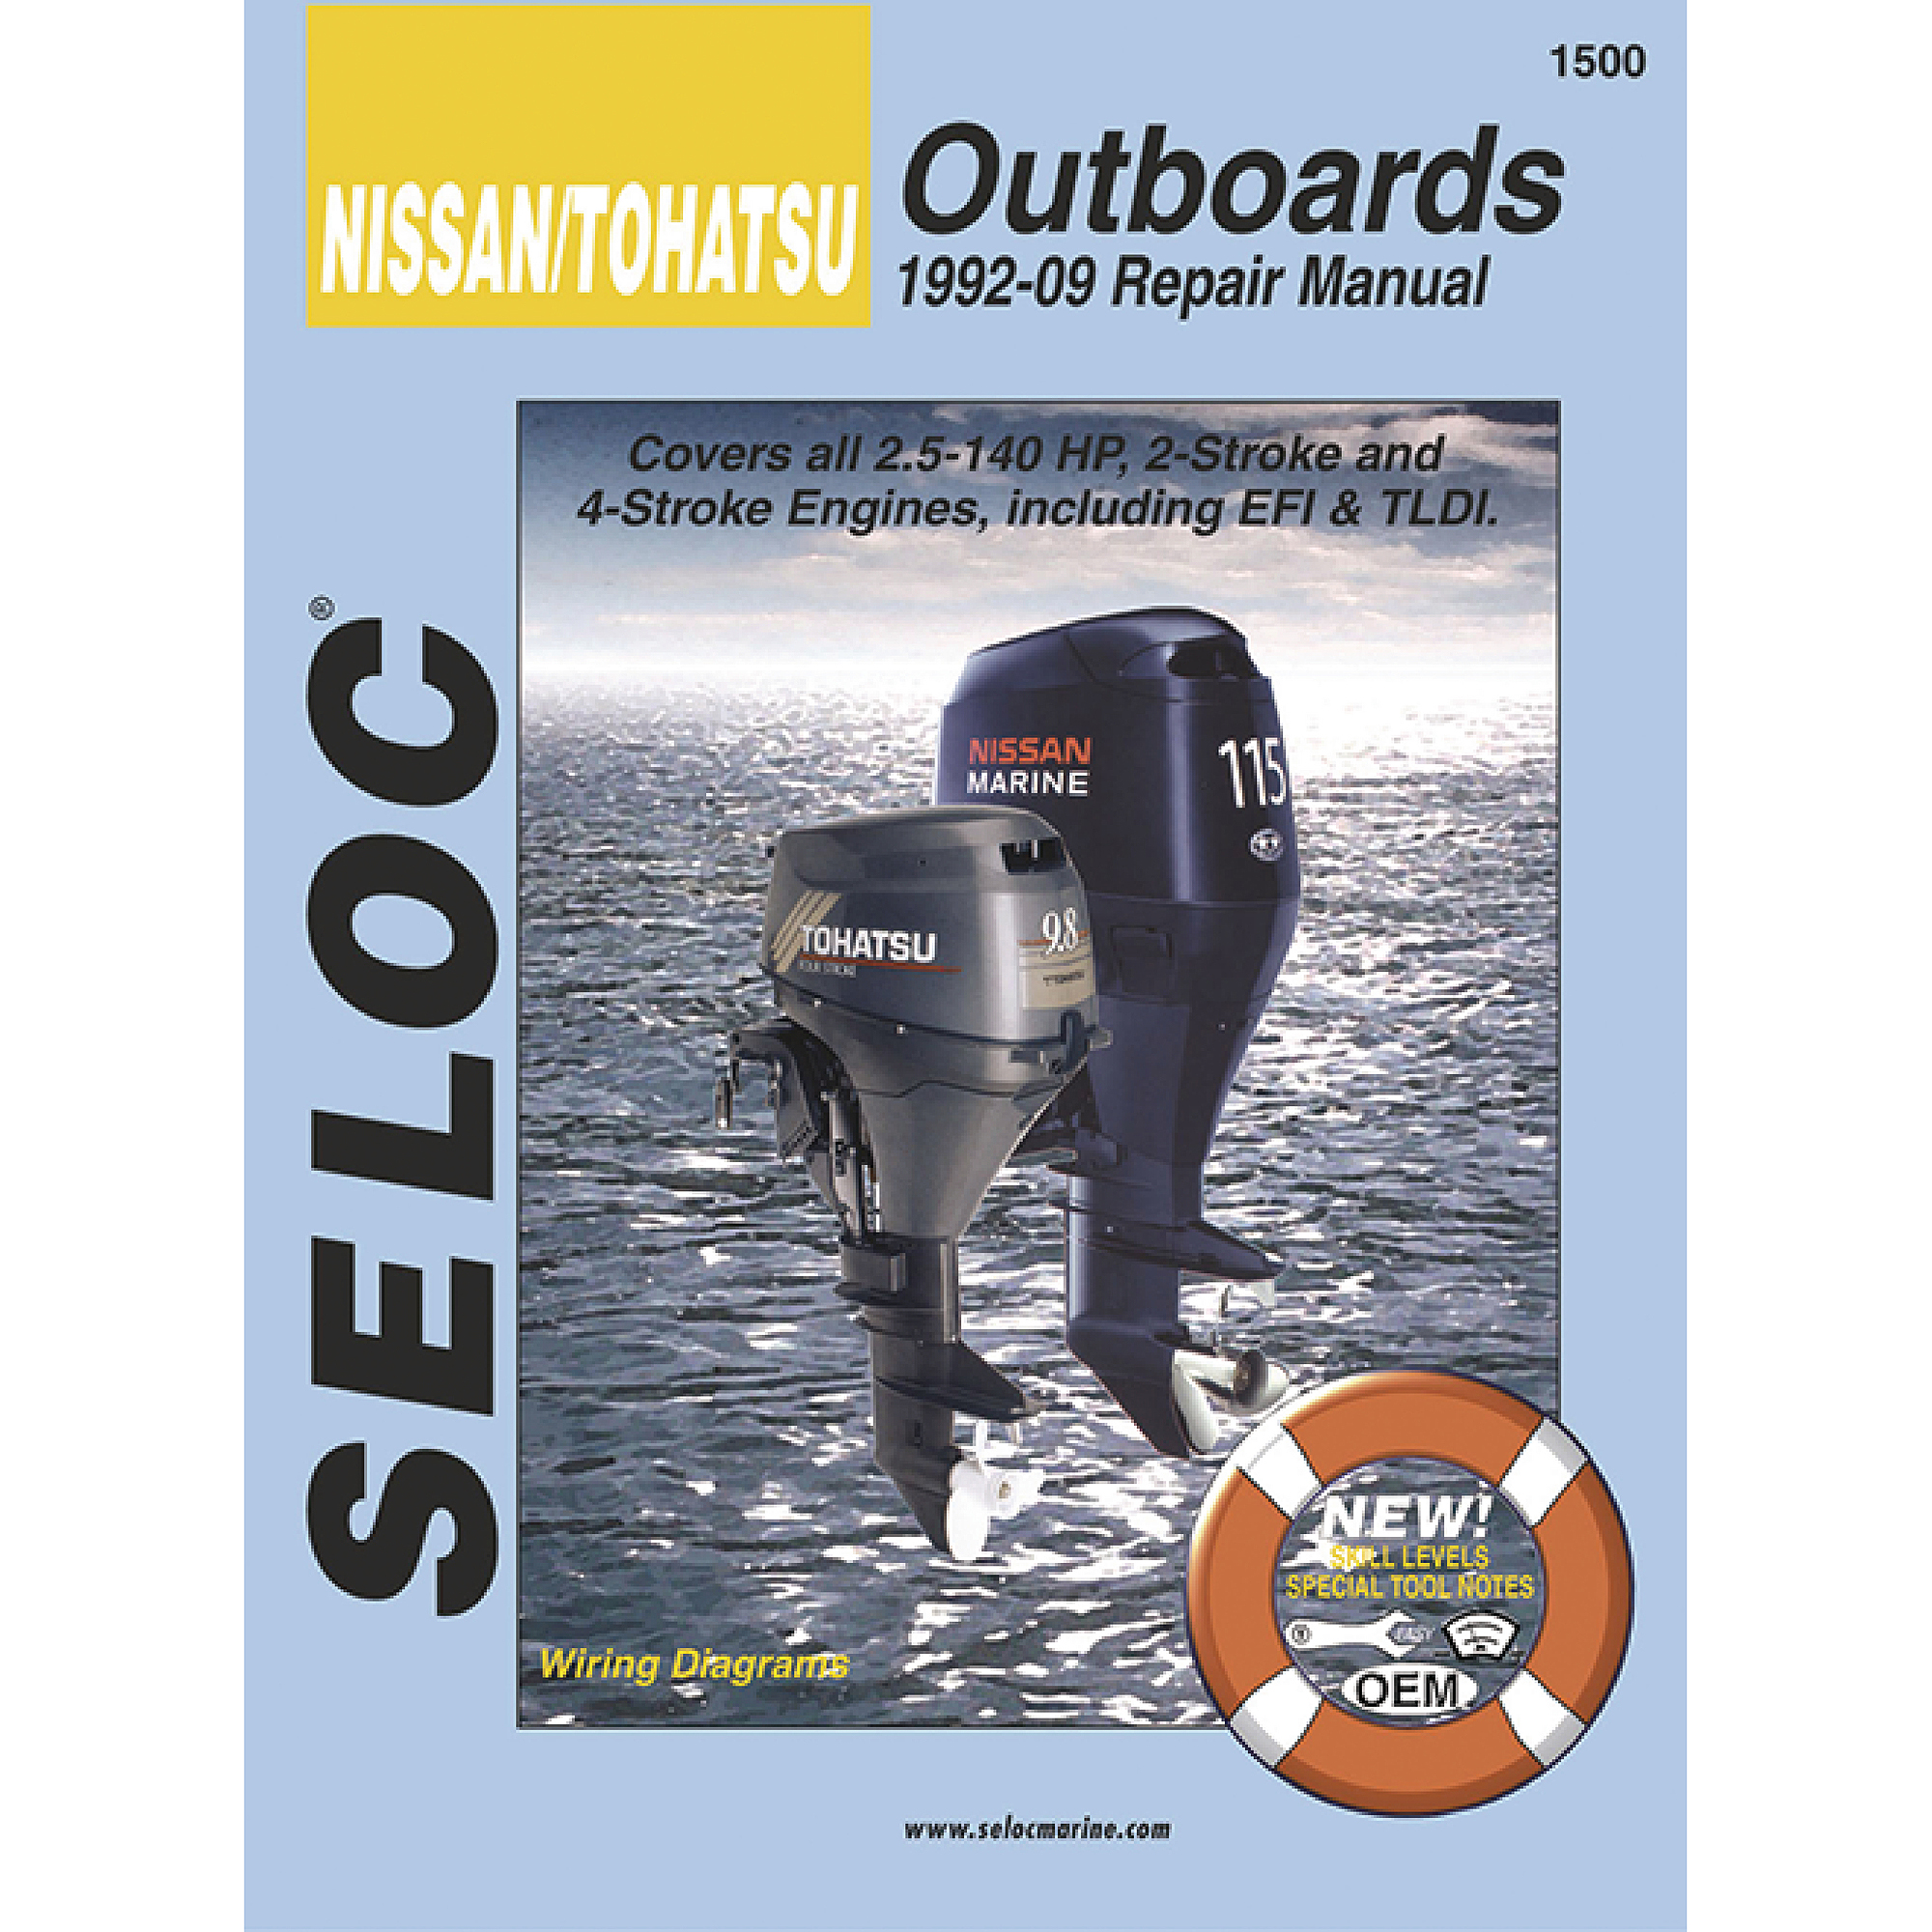 Seloc Marine Manual for Nissan/Tohatsu Outboards 1992-2009